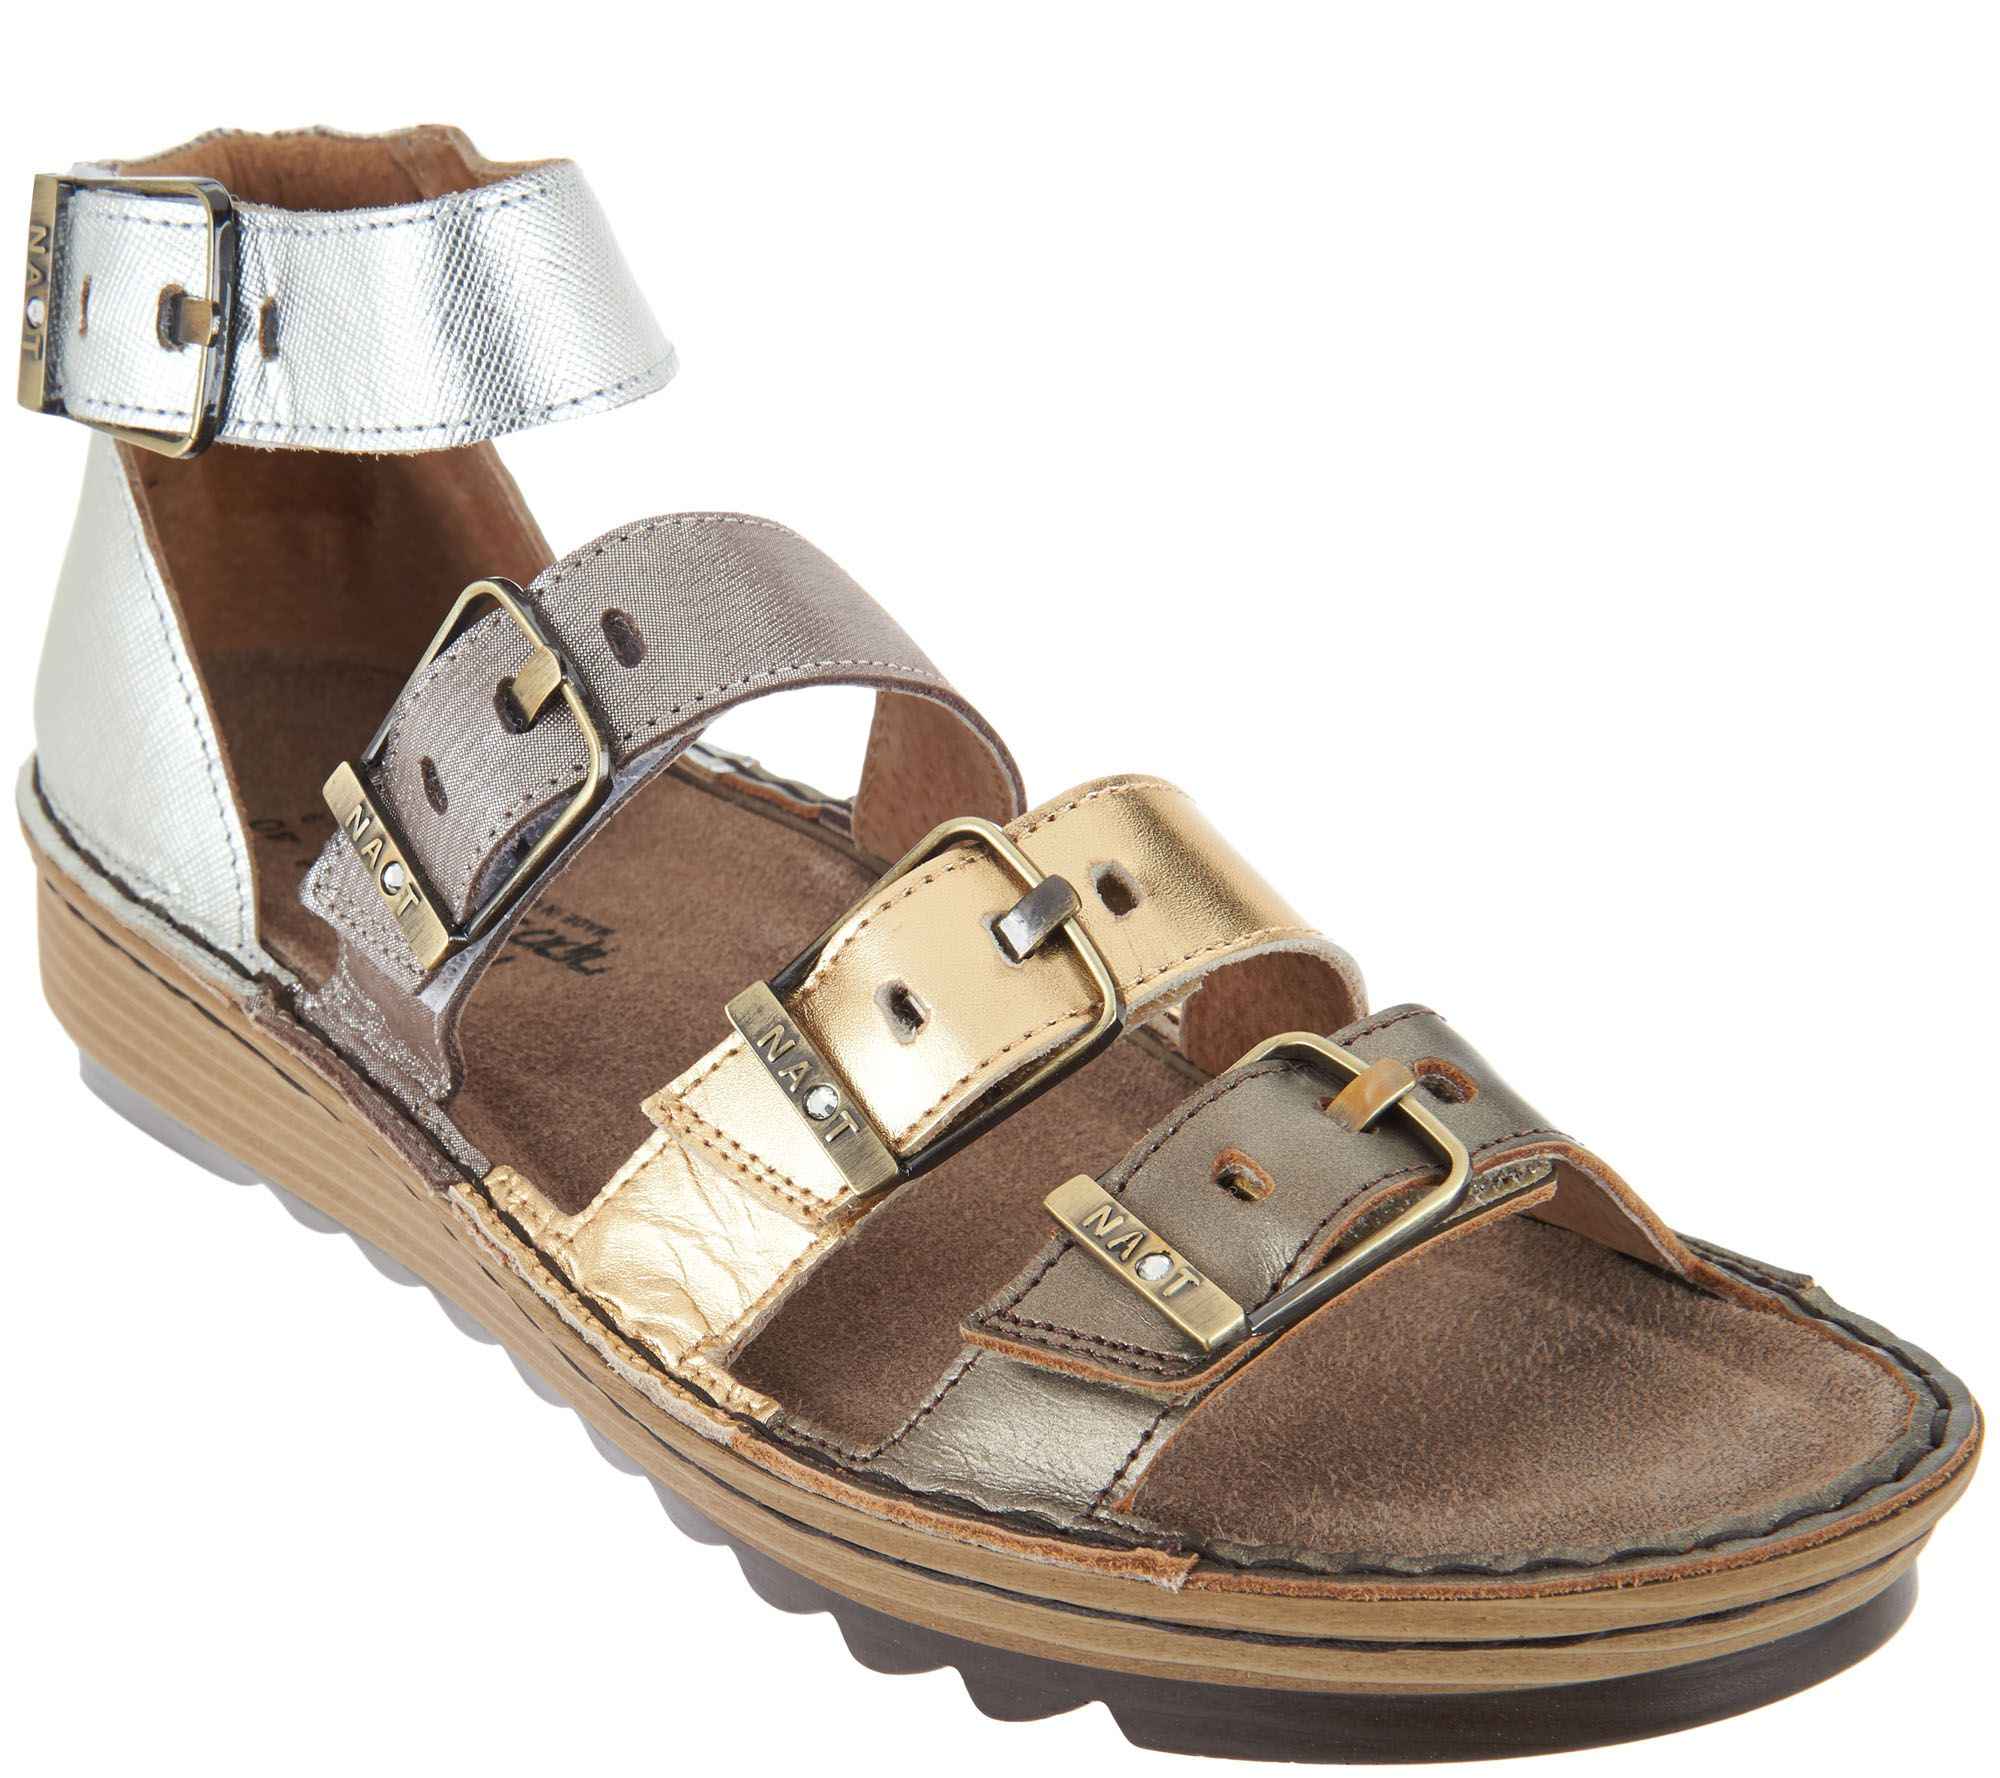 a6a0741746bd Naot Leather Sandals with Buckle Details - Begonia - Page 1 — QVC.com